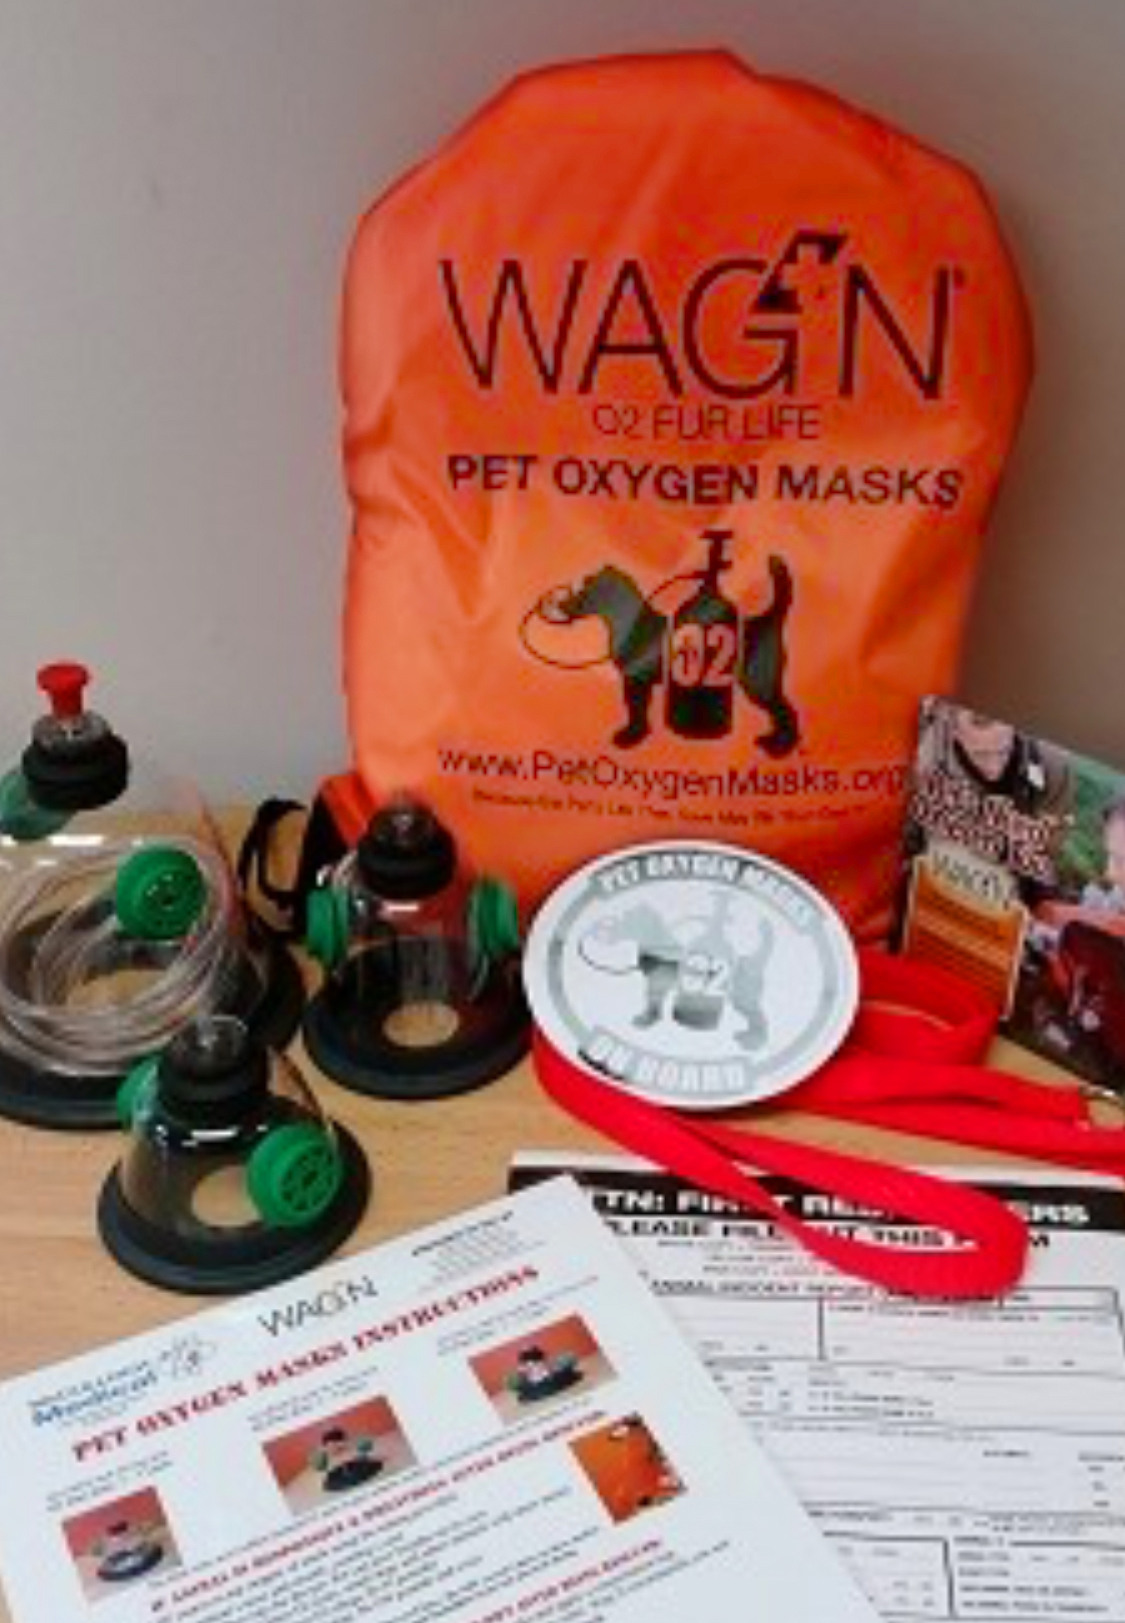 WAG'N oxygen masks for pets